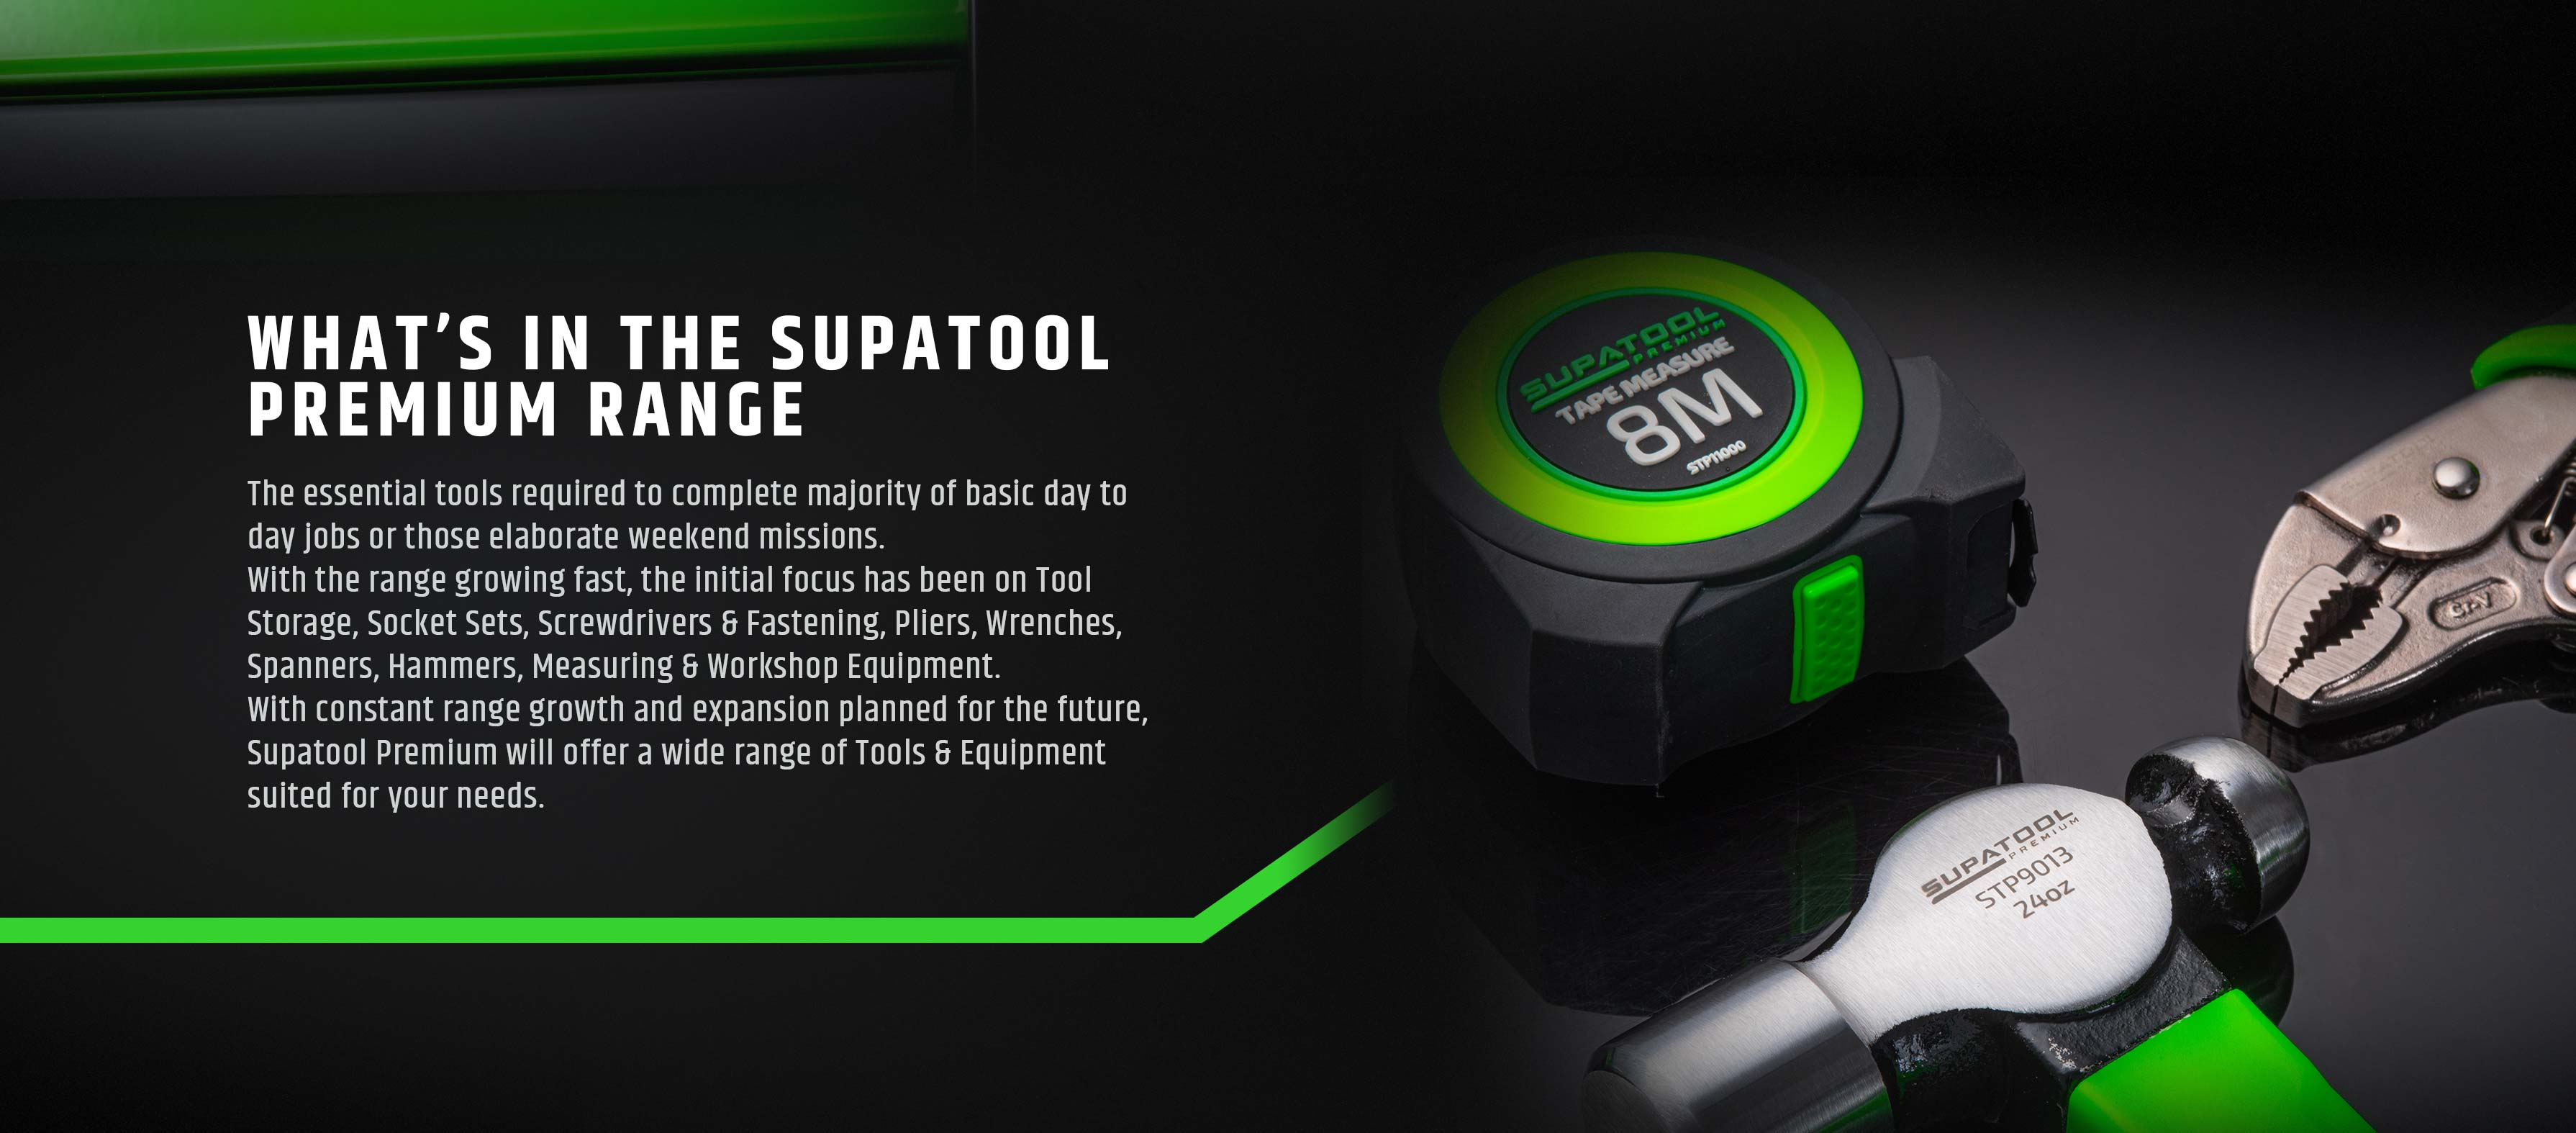 What's in the Supatool premium range